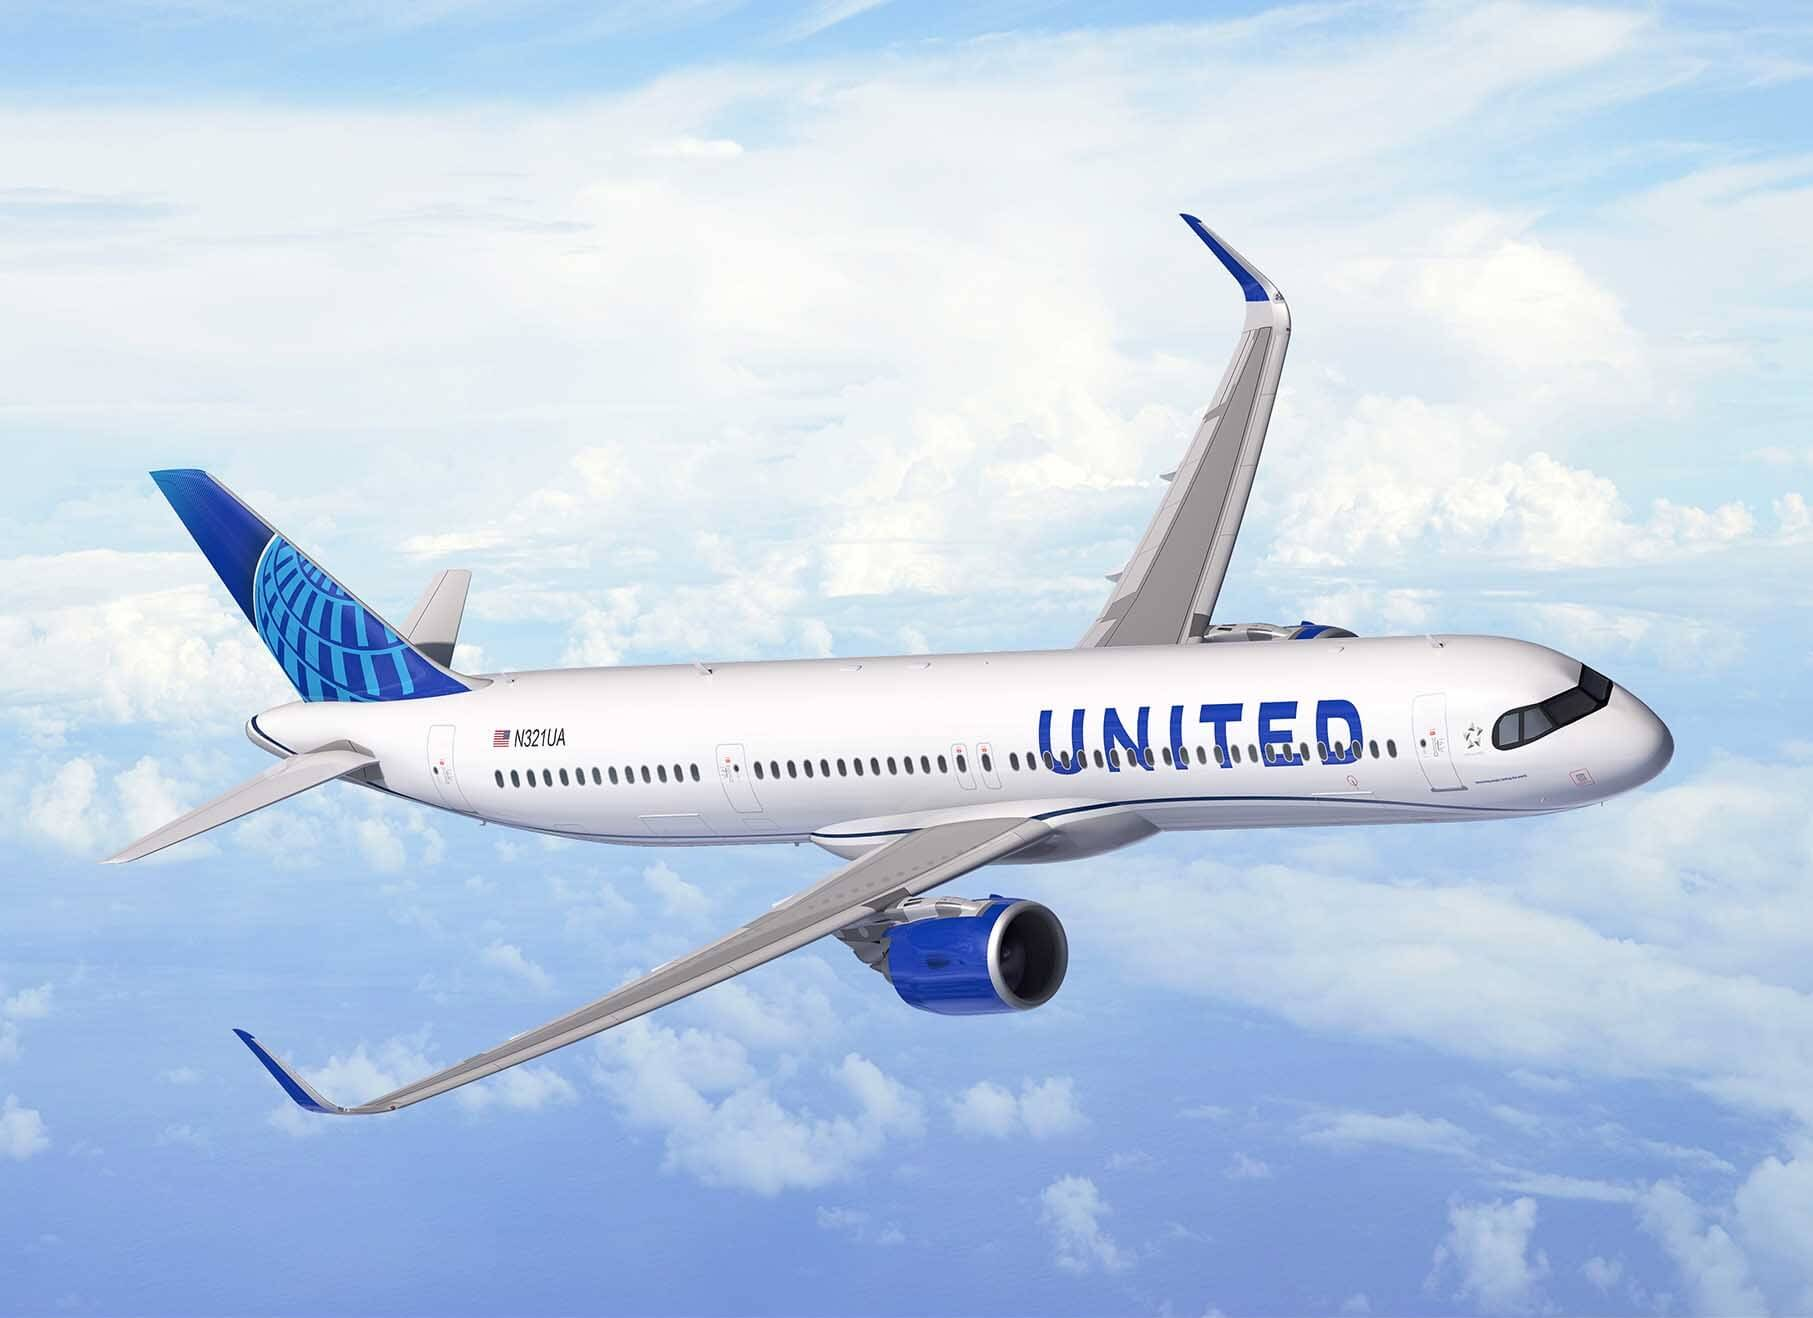 United Airlines plans transatlantic route expansion with 50 new Airbus A321XLR jets